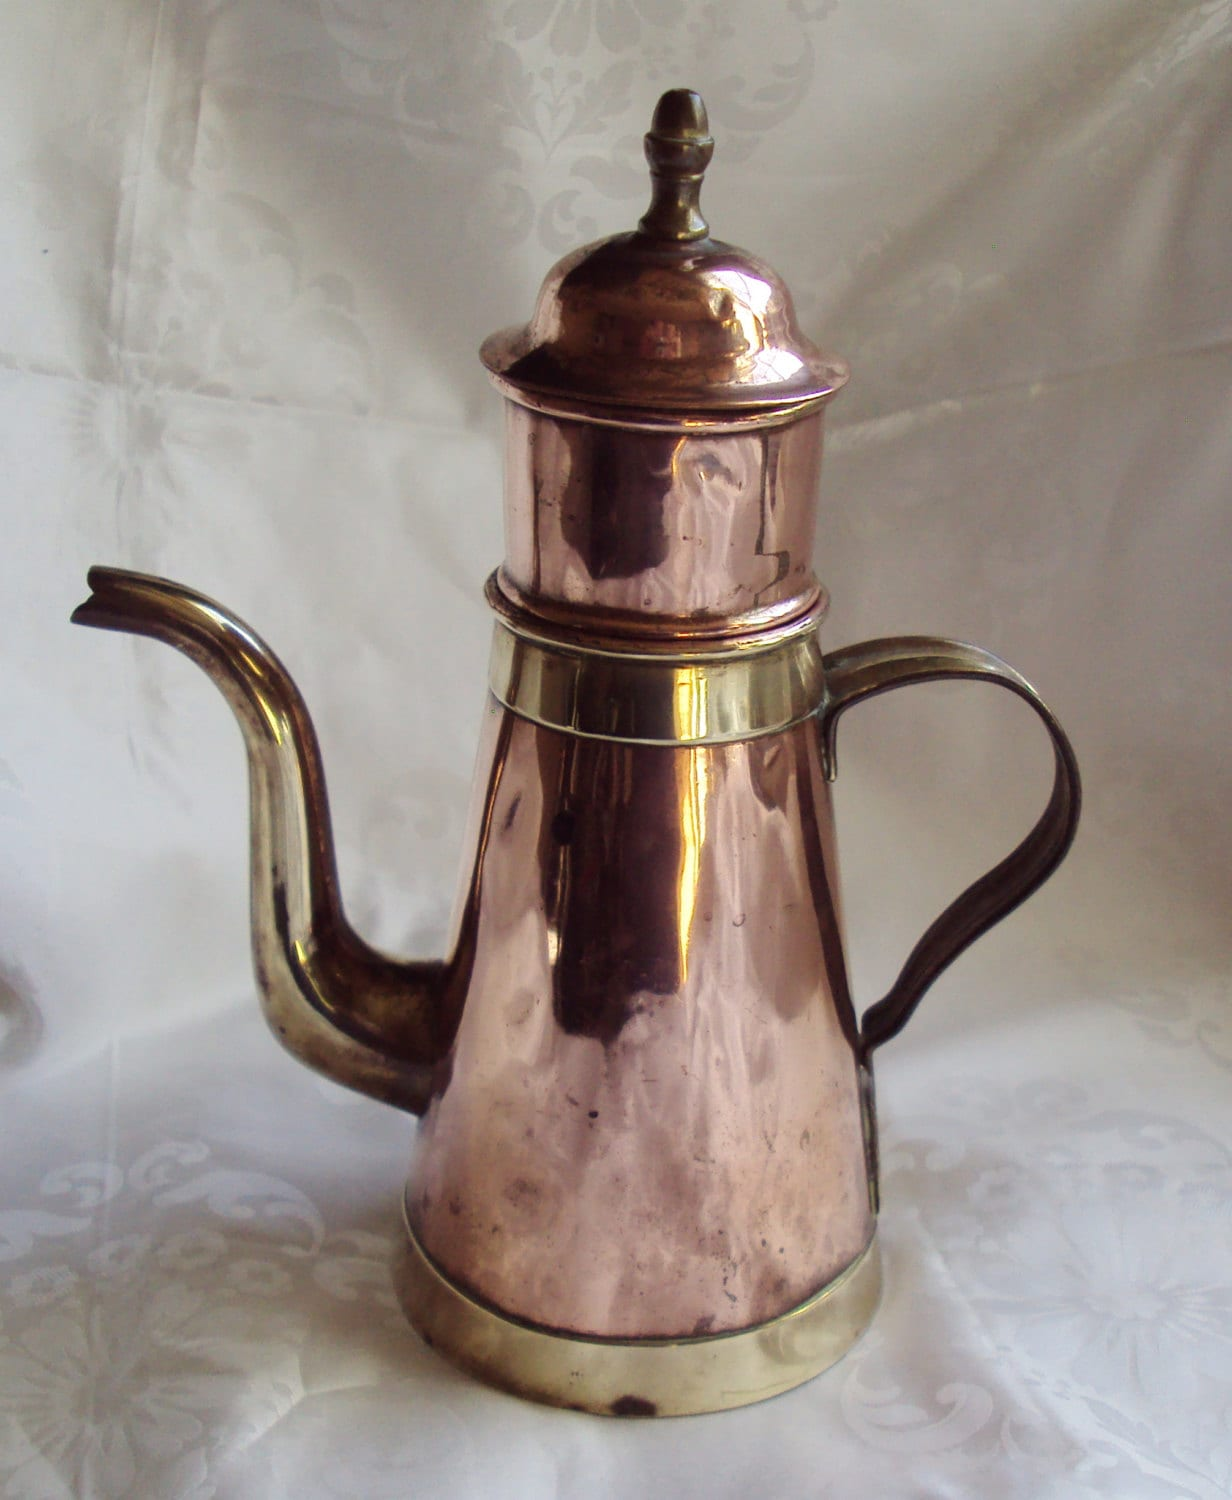 Antique Percolator Coffee Maker : Vintage Copper and Brass Coffee Pot and by mamaisonfrancaise